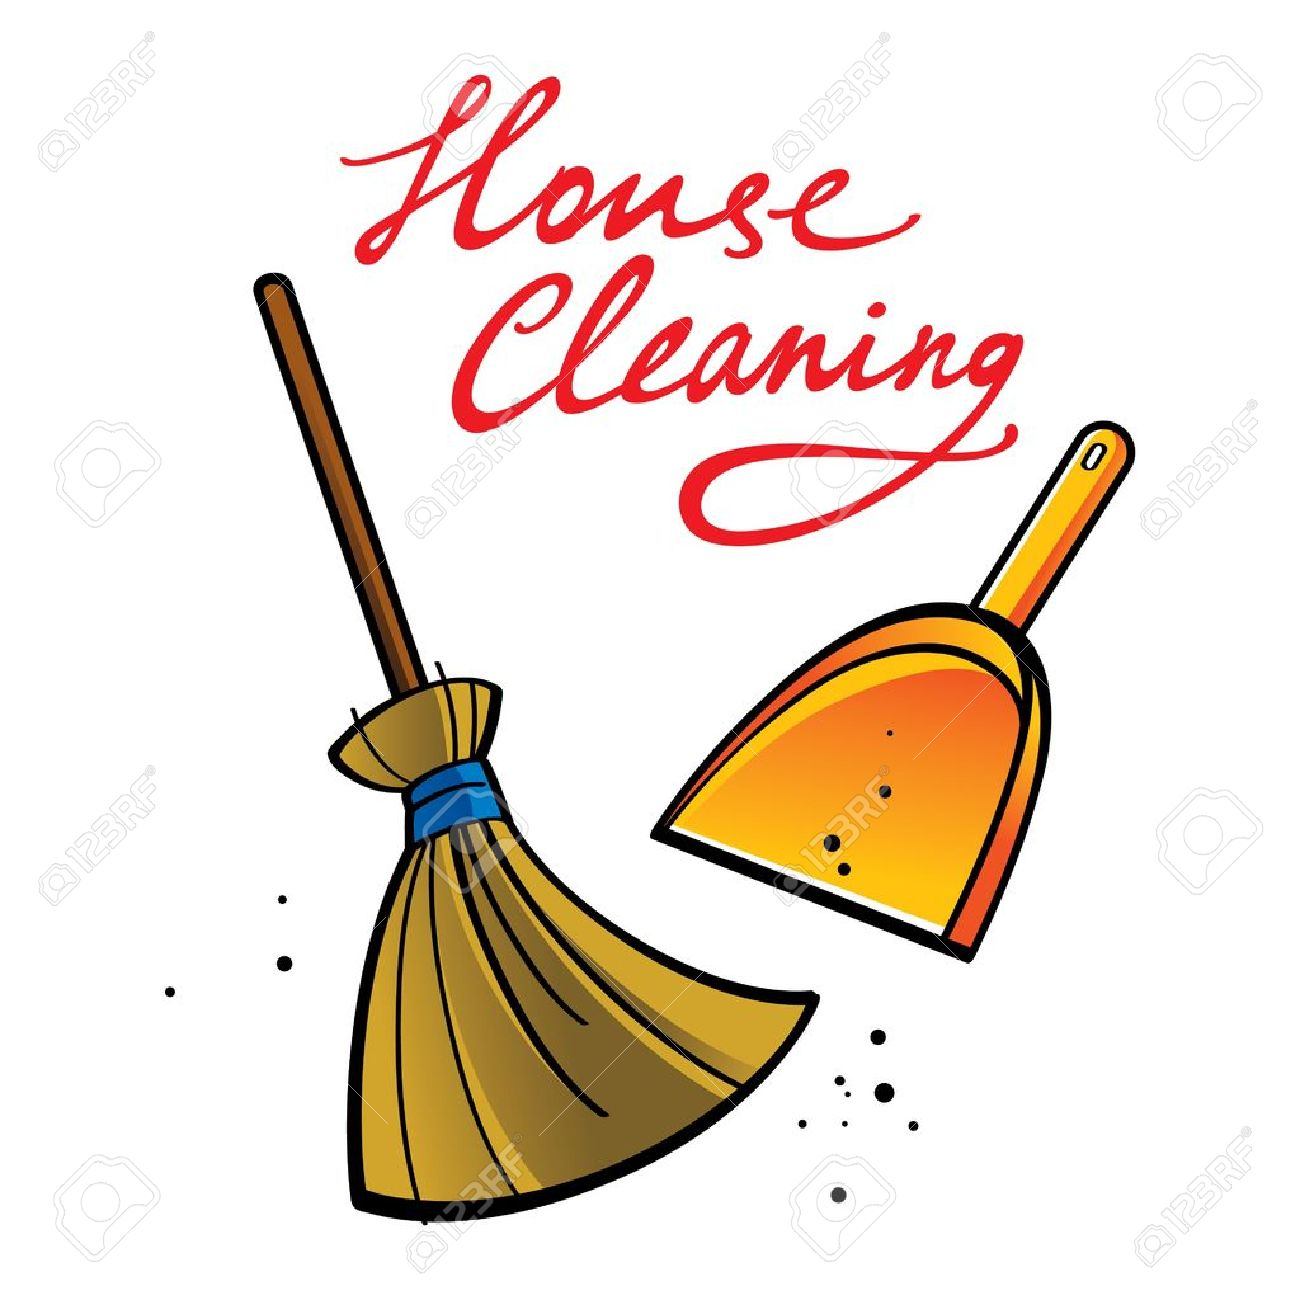 House Cleaning Broom Brush Dust Dirt Service Shovel Royalty Free.